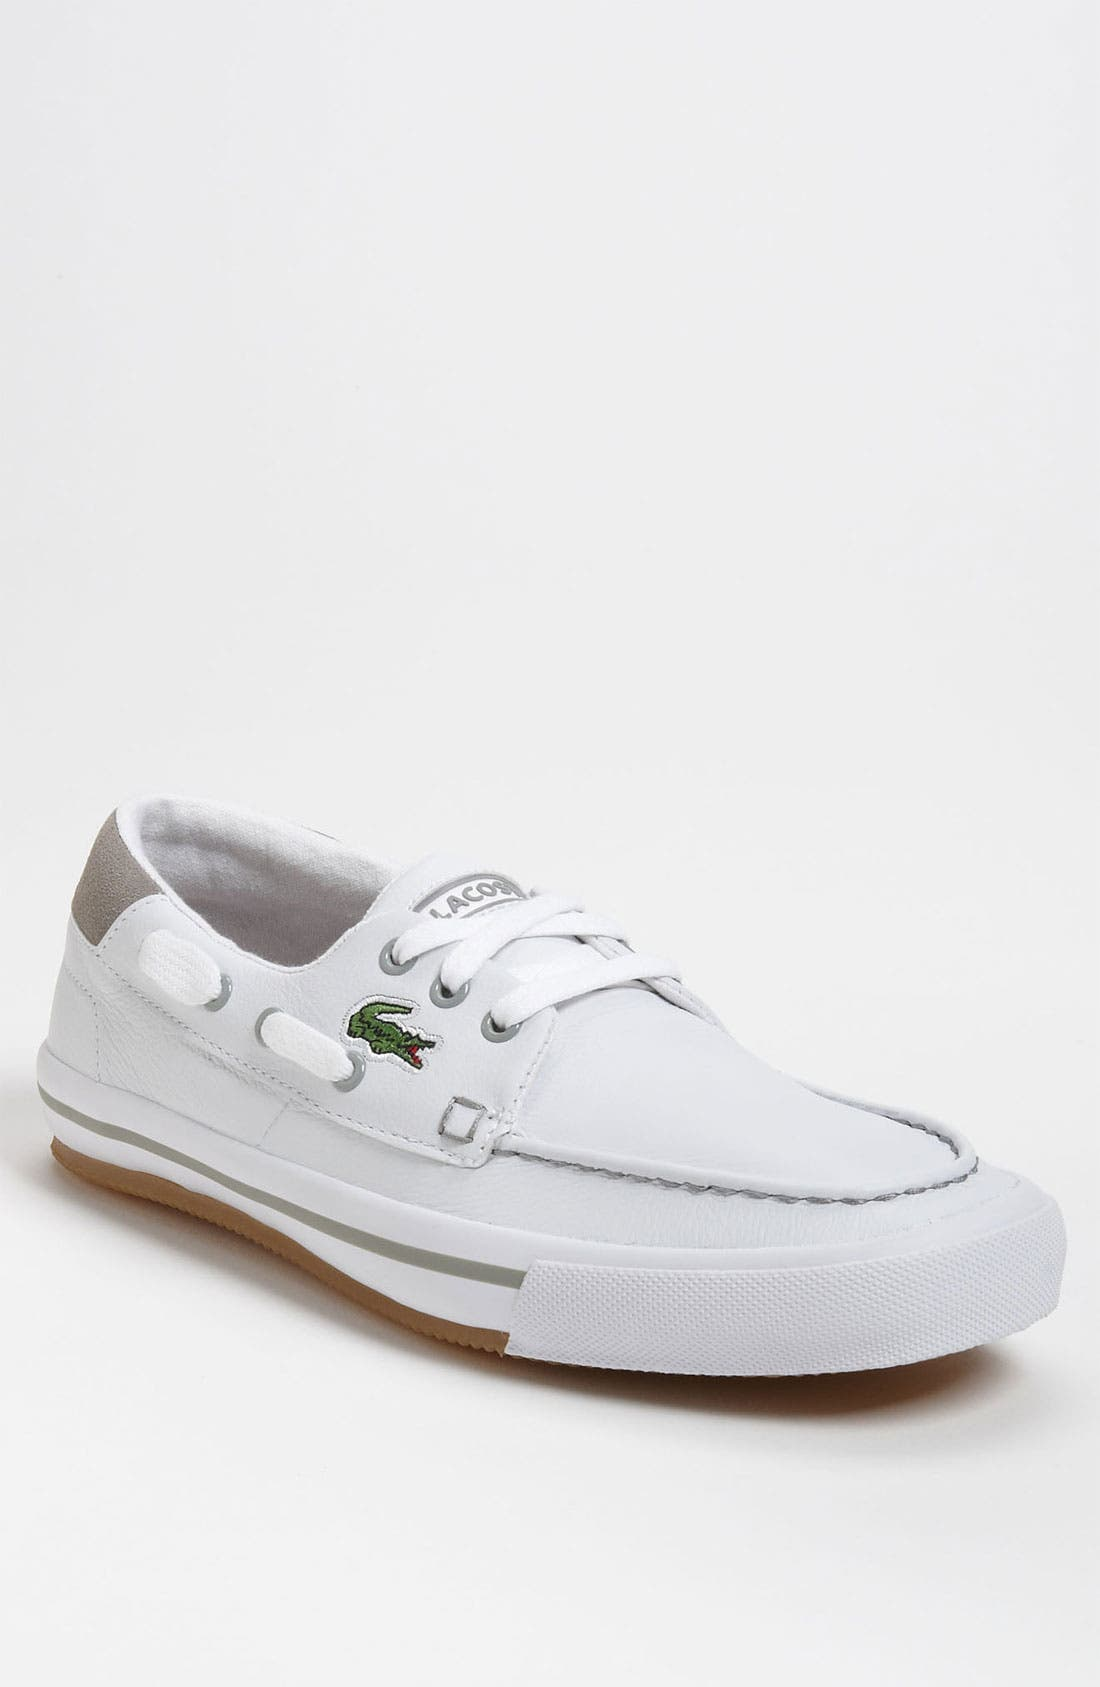 Alternate Image 1 Selected - Lacoste 'Sculler Low CR' Sneaker